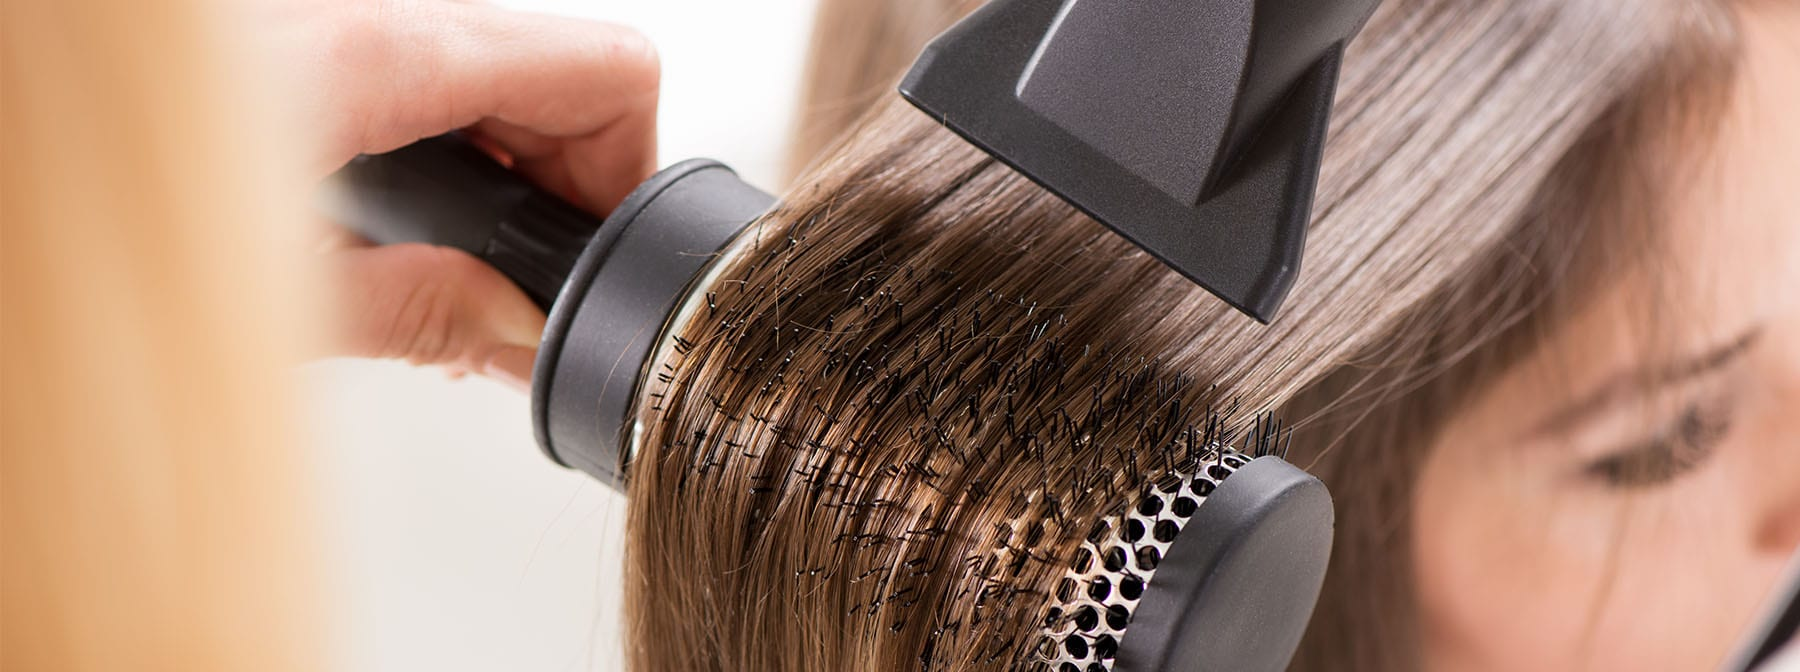 T3 Cura and T3 Cura Luxe are the Key to Rapunzel-Worthy Hair